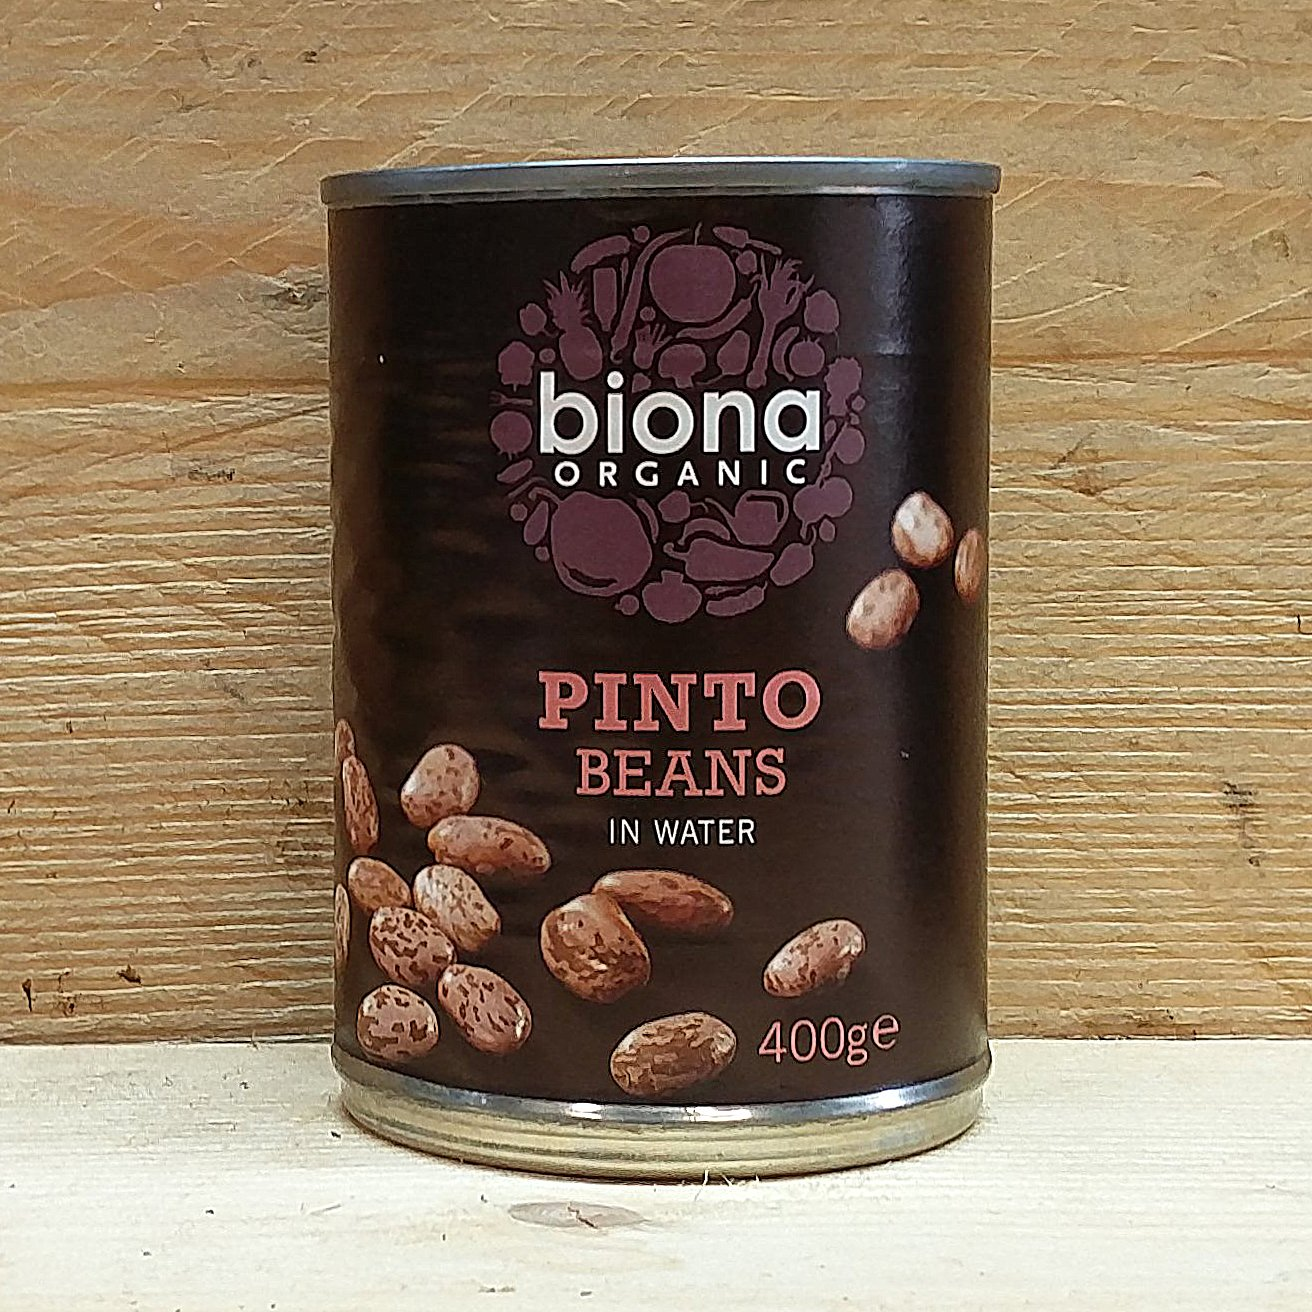 Biona Pinto Beans 400g